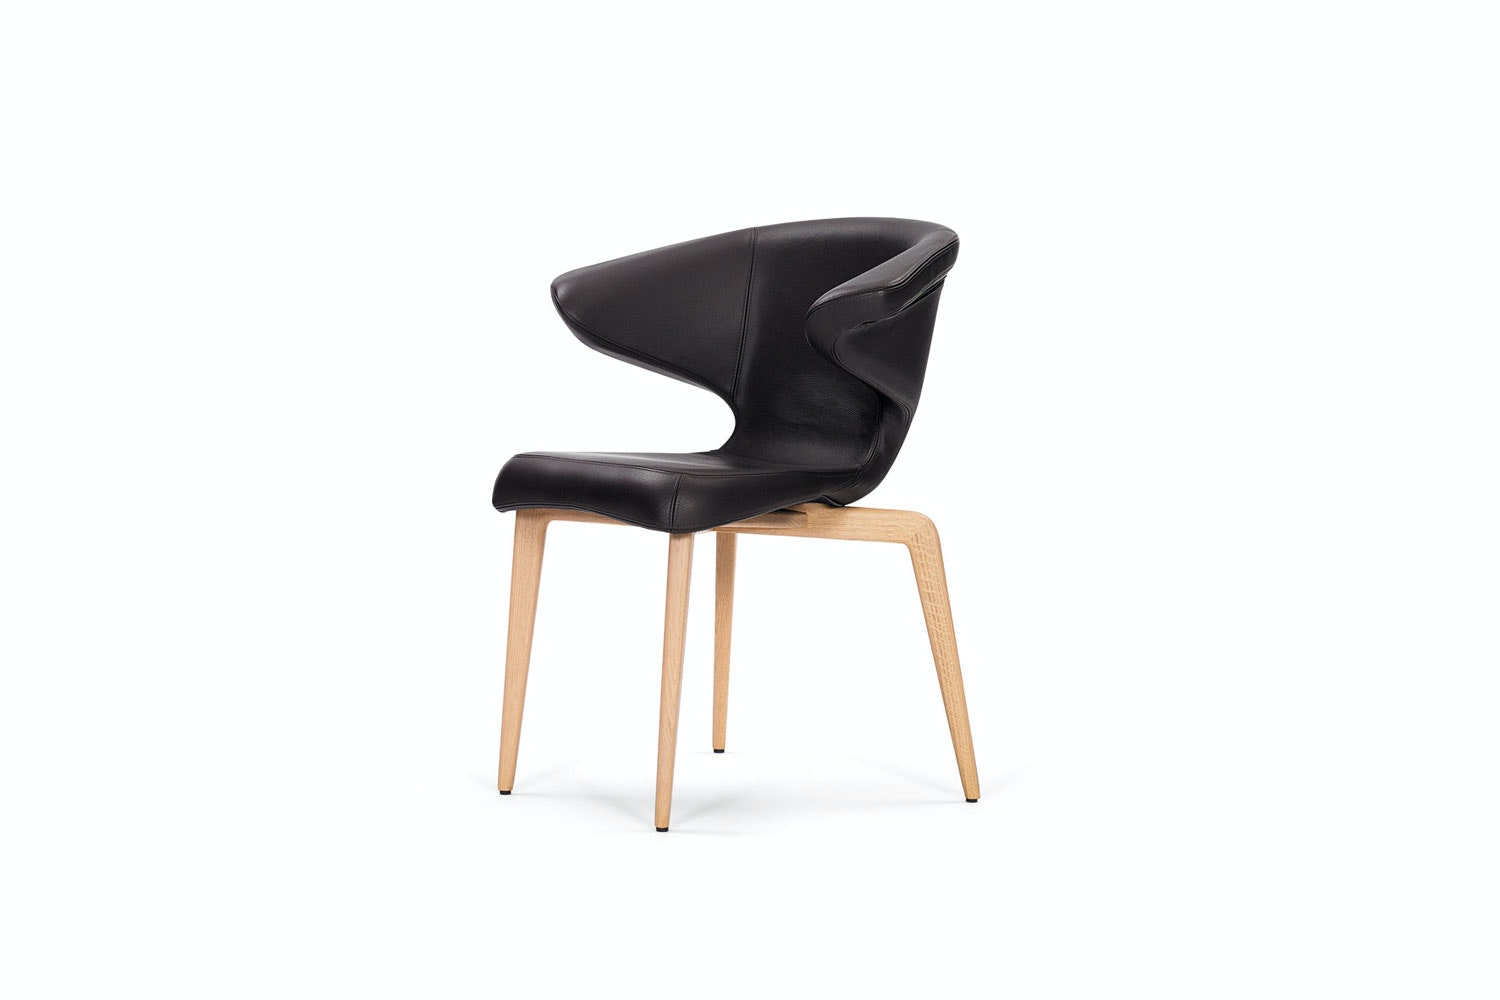 Munich Armchair by Sauerbruch Hutton for ClassiCon